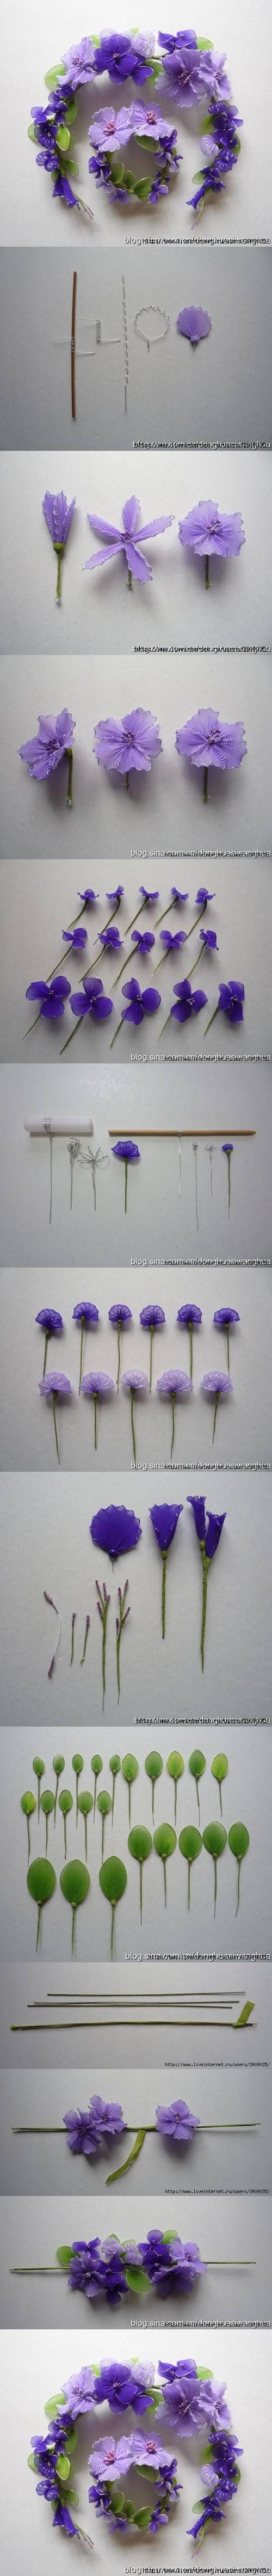 DIY Wire Nylon Flowers DIY Projects | UsefulDIY.com Follow Us on Facebook ==> http://www.facebook.com/UsefulDiy